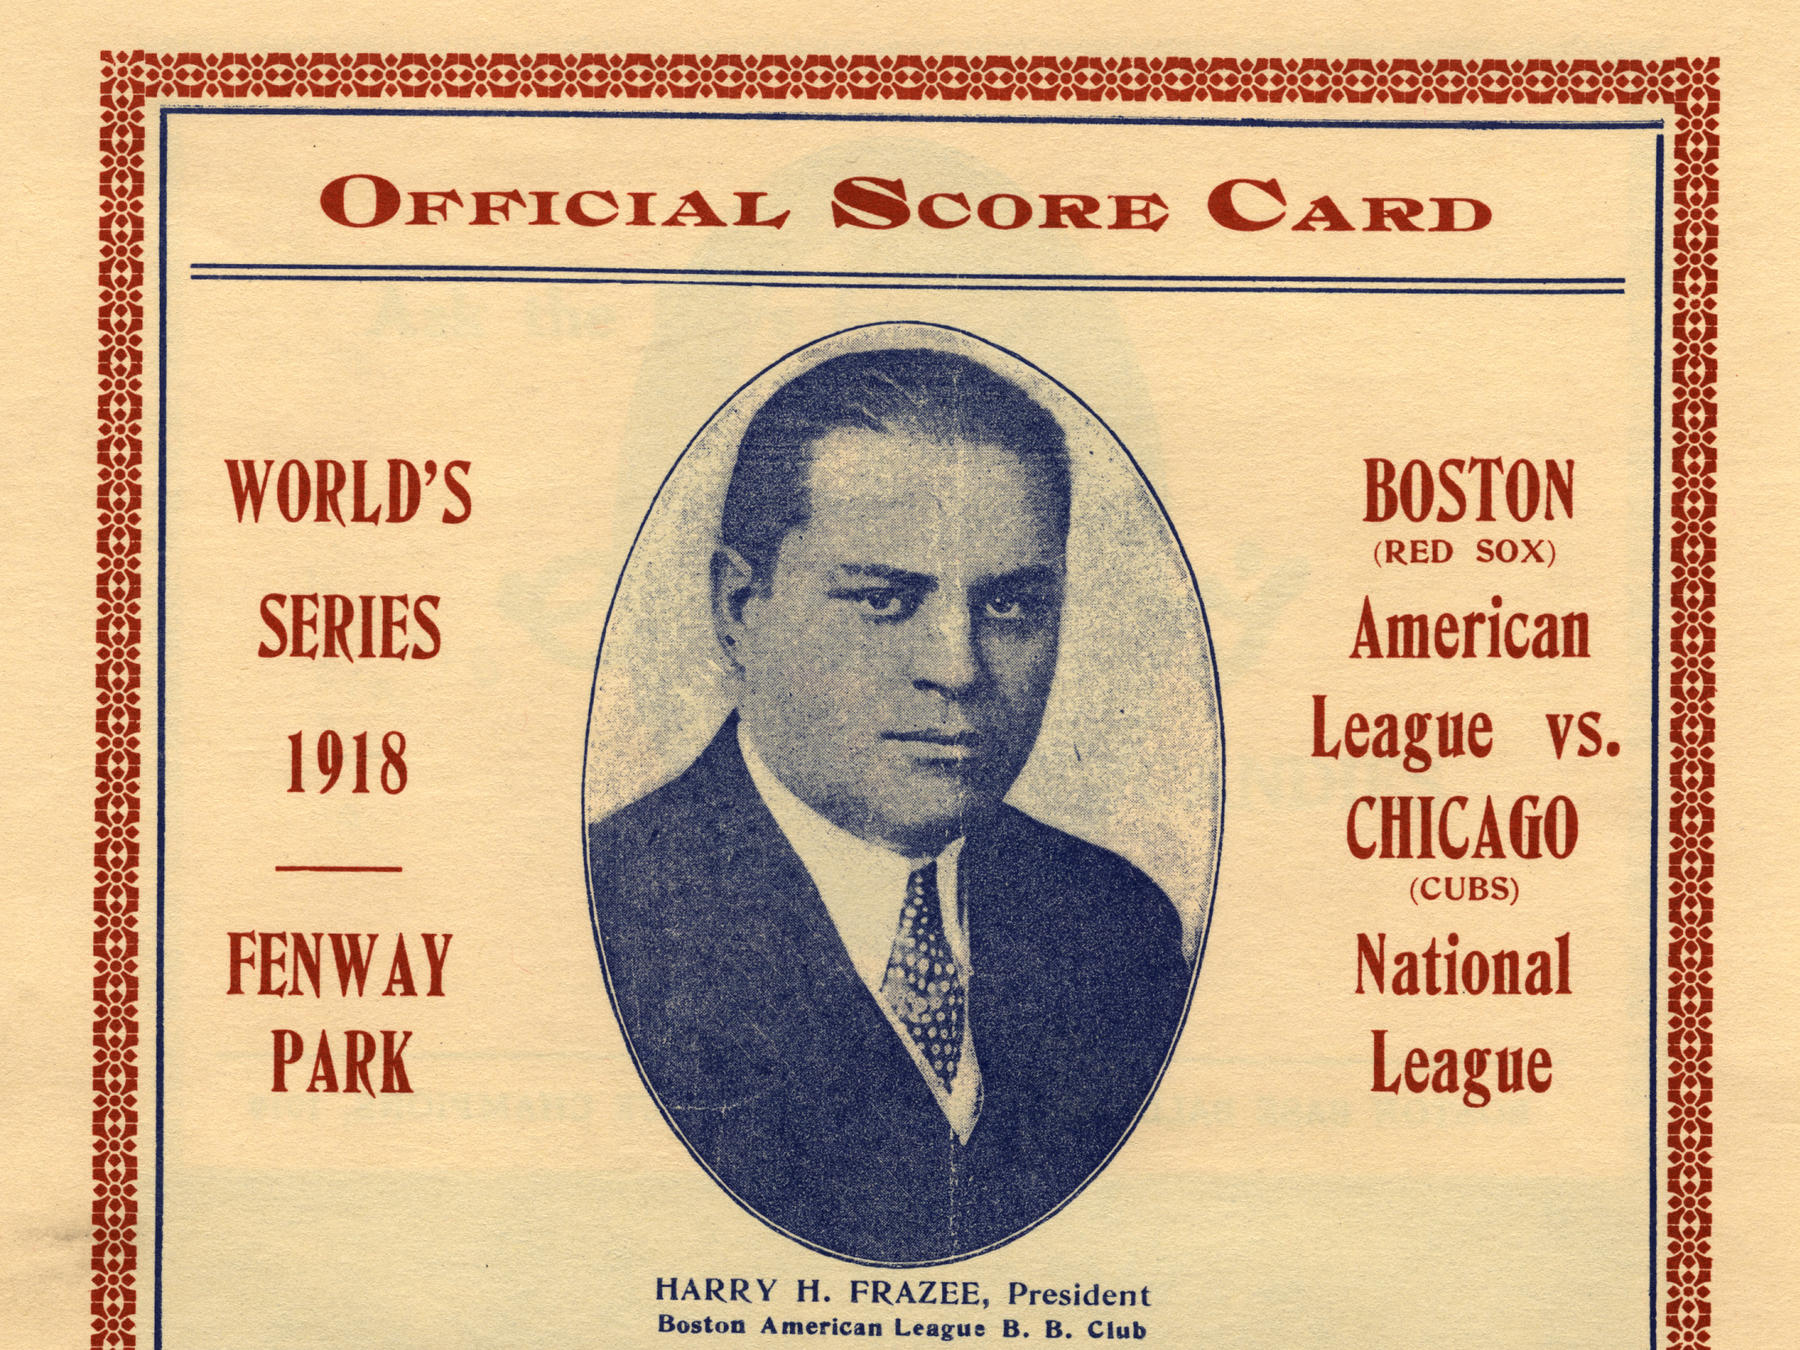 Detail from an official 1918 World Series scorecard. GV878.4.A15